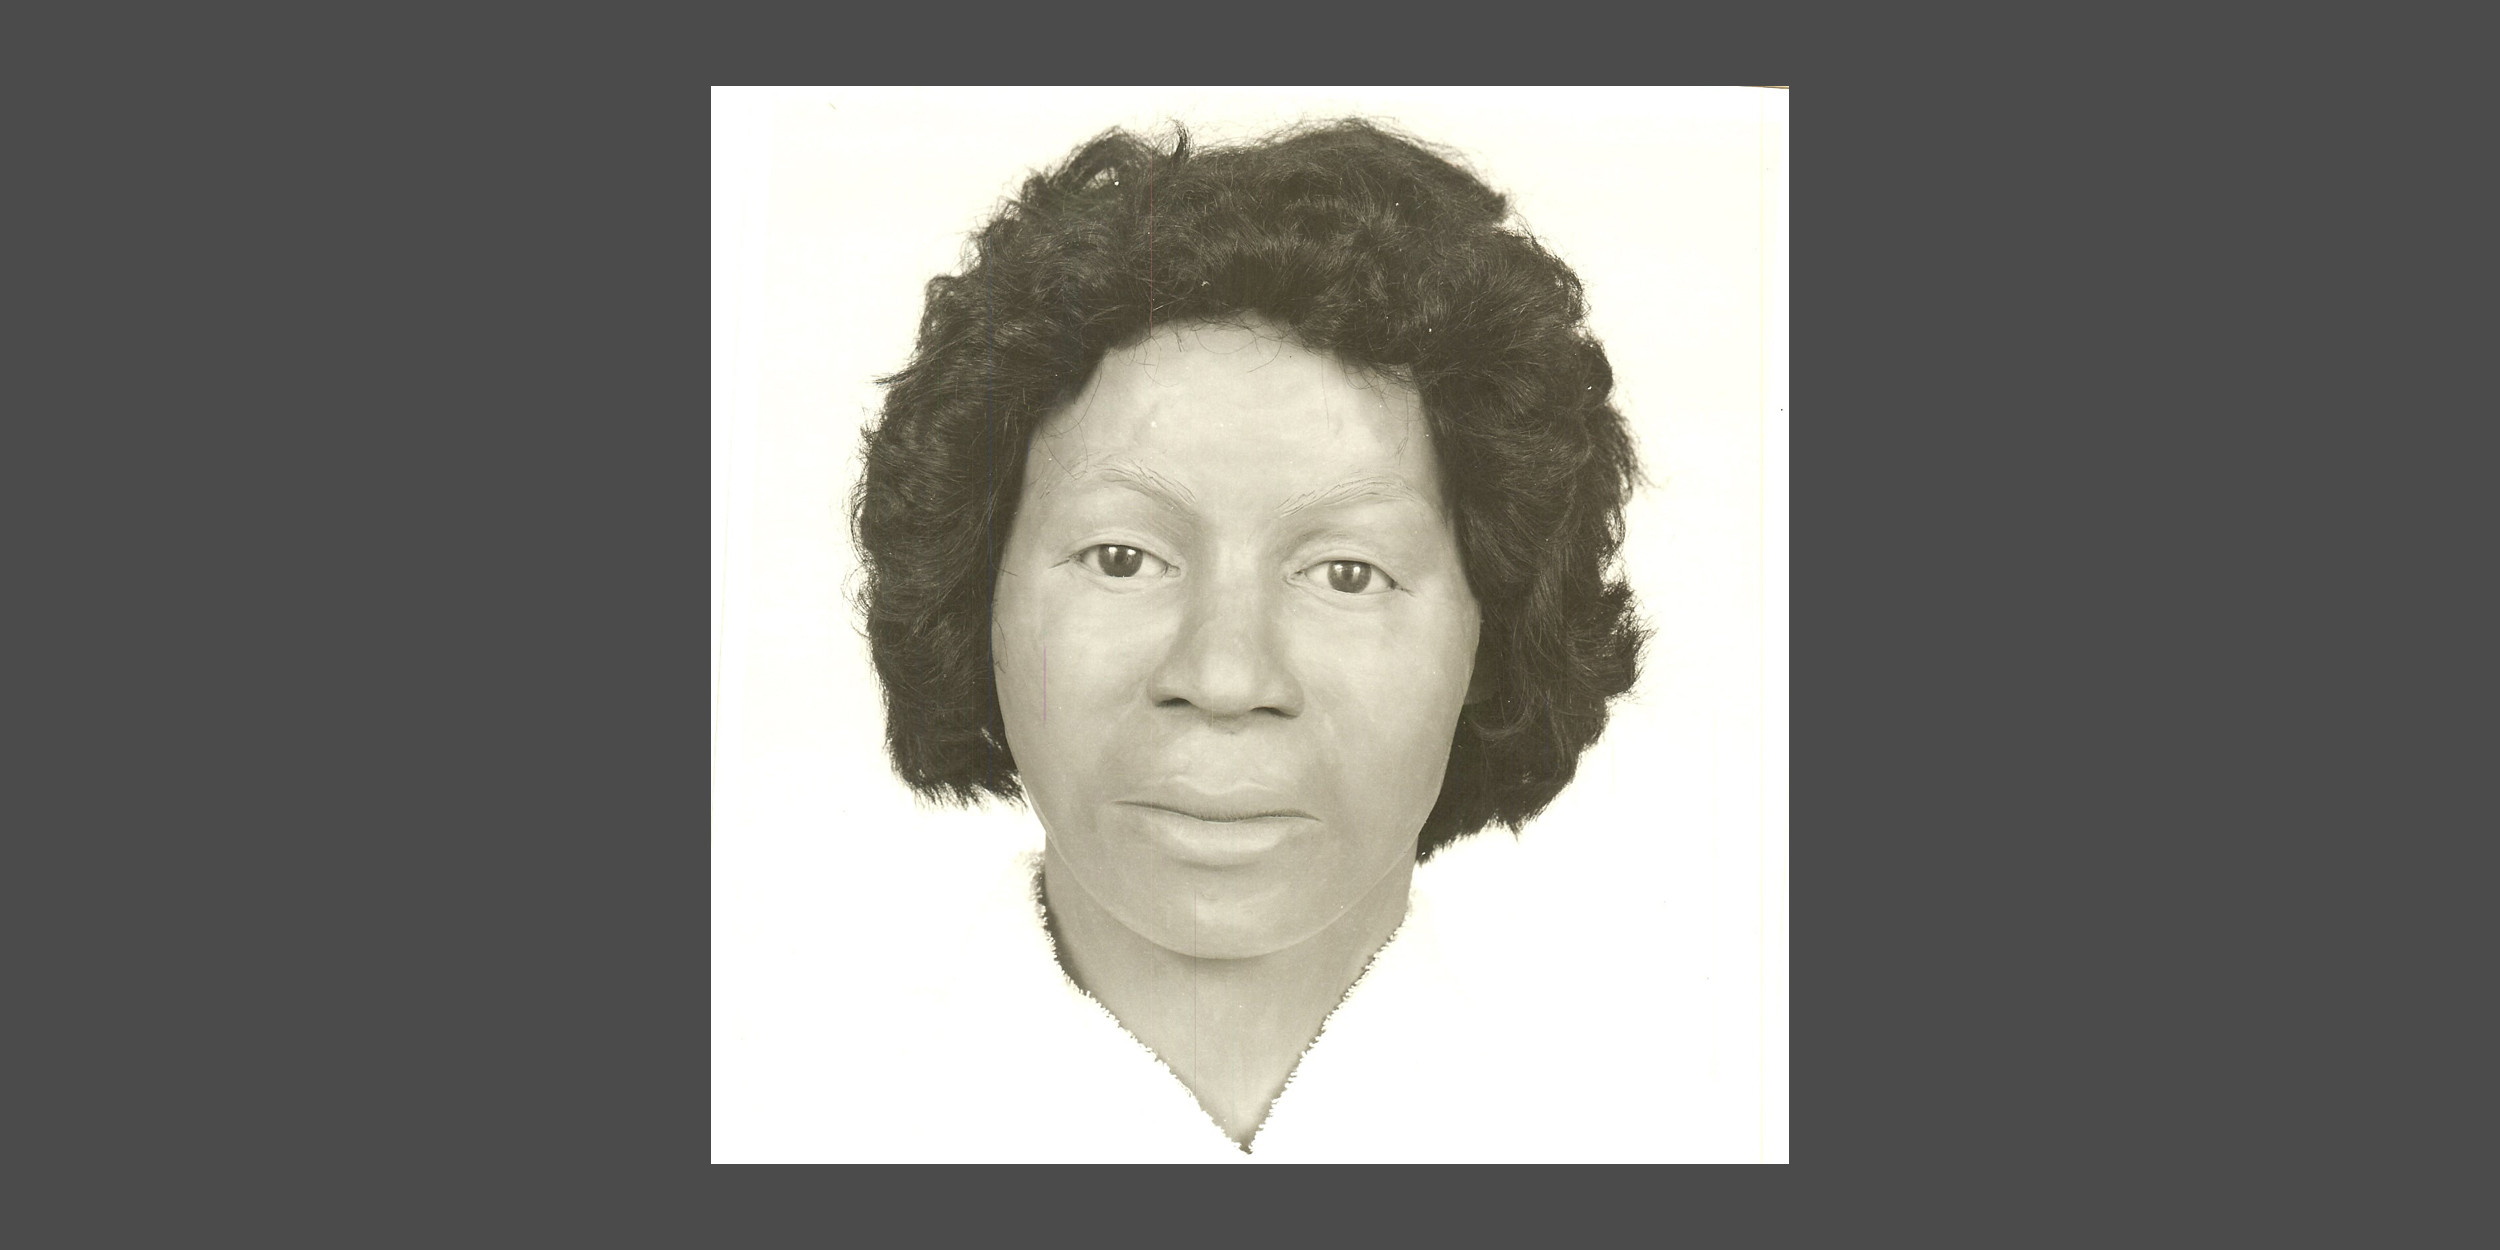 Sheriff IDs woman found in 1977 as possible victim of most prolific serial killer in U.S. history